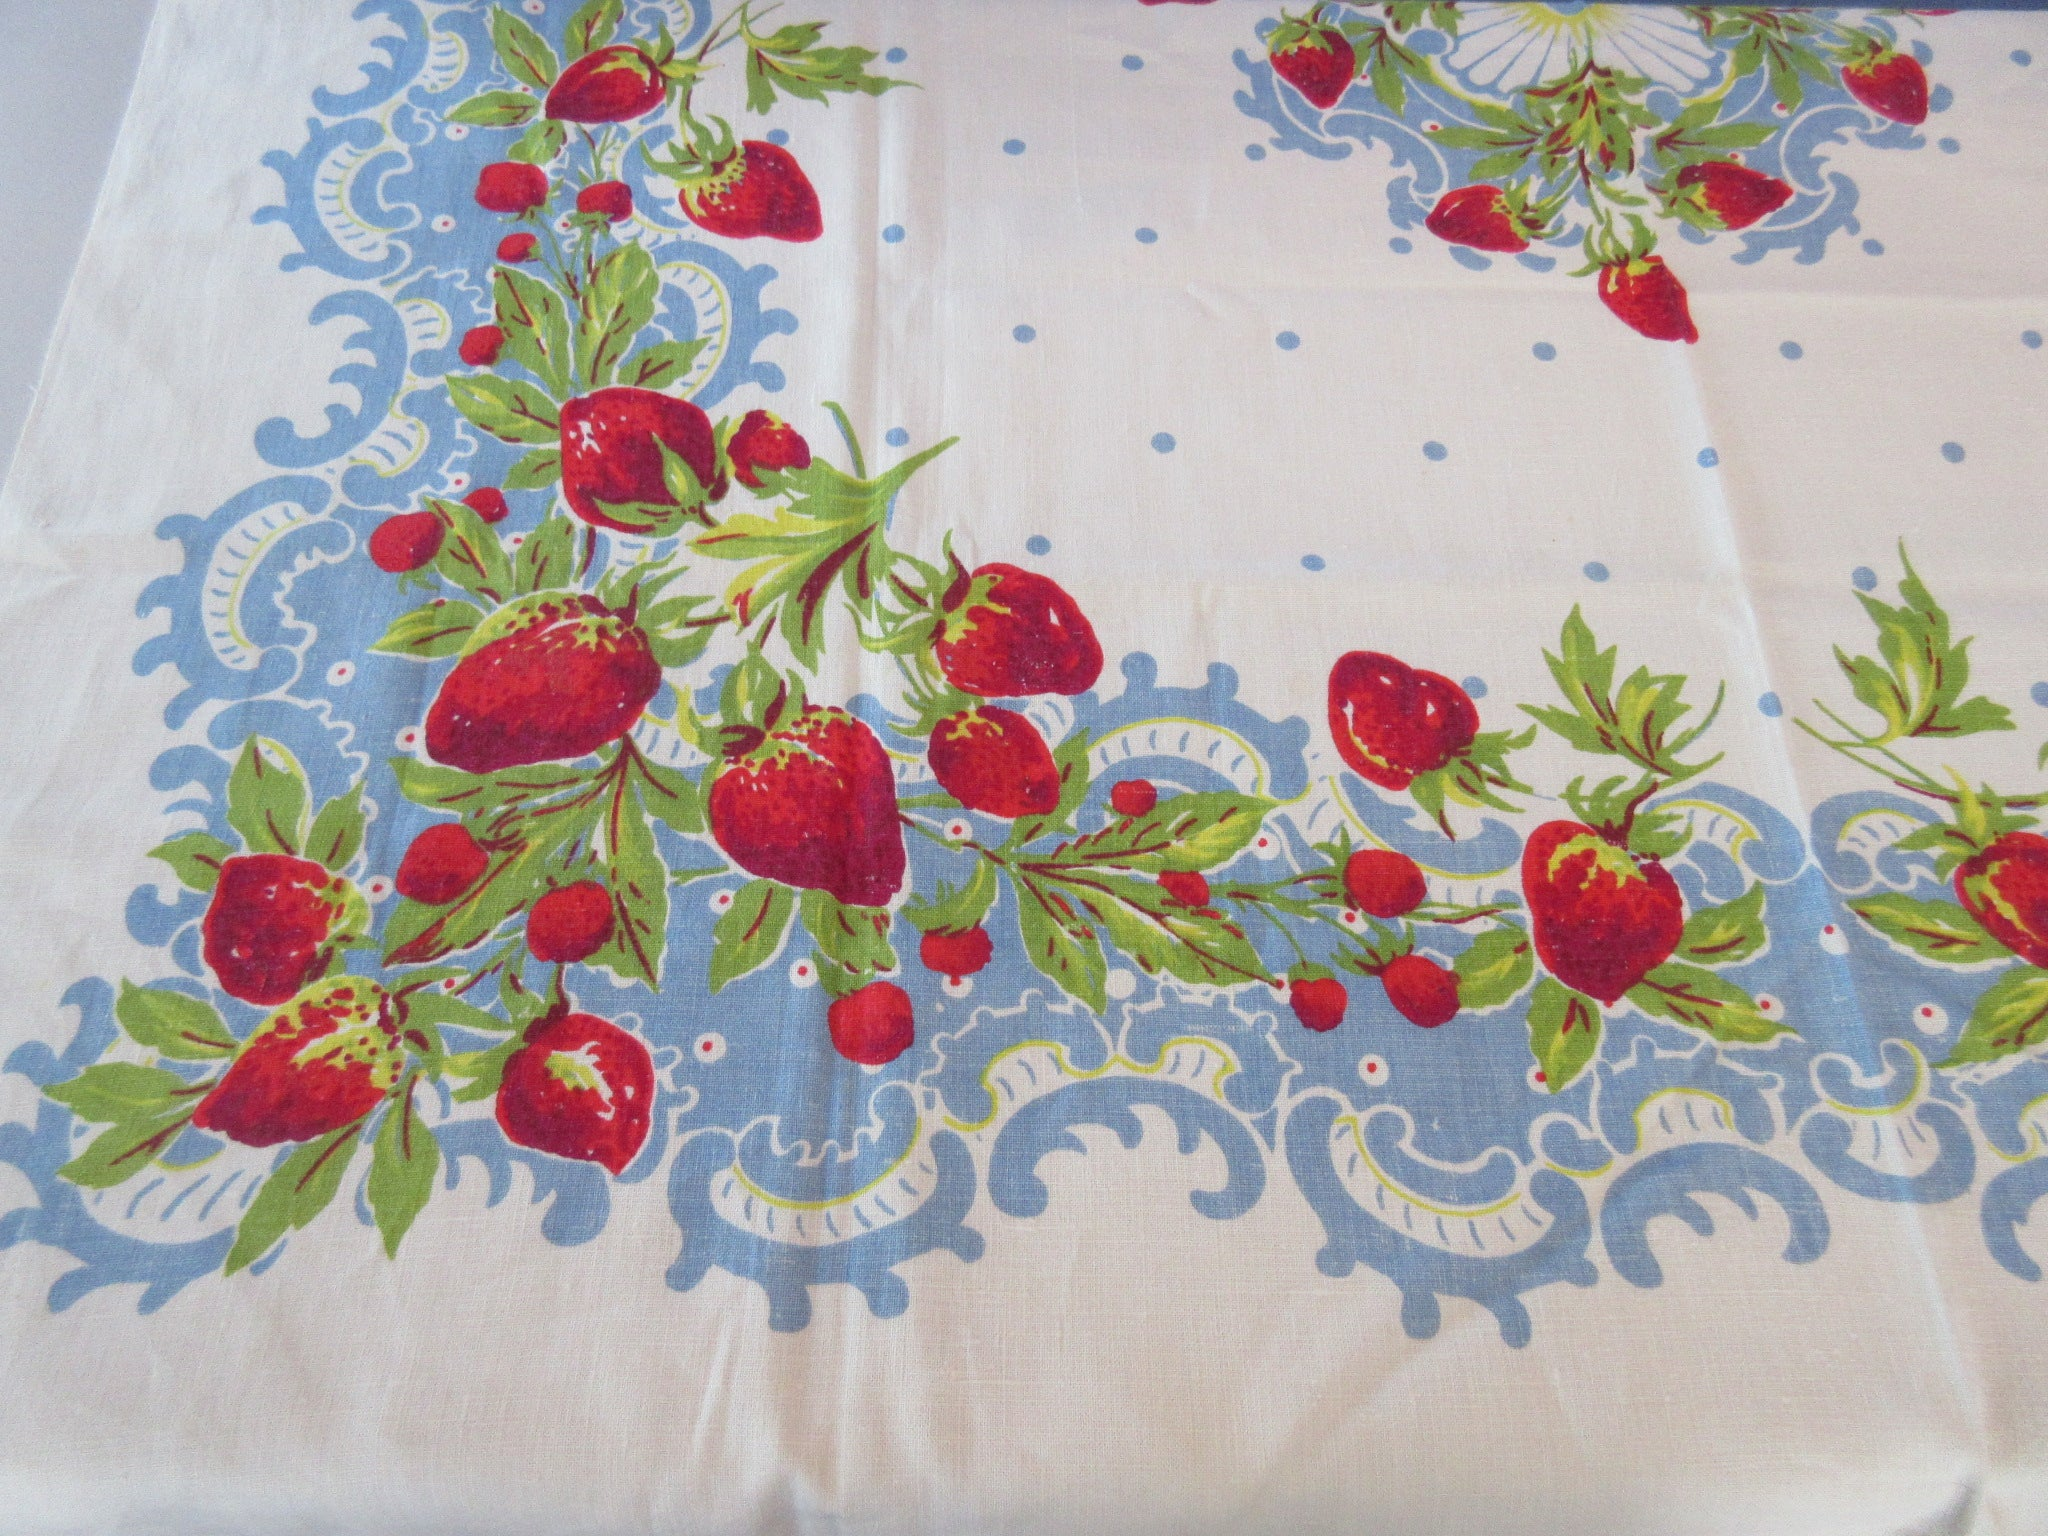 Strawberries on Blue Lace Linen Fruit Vintage Printed Tablecloth (53 X 49)